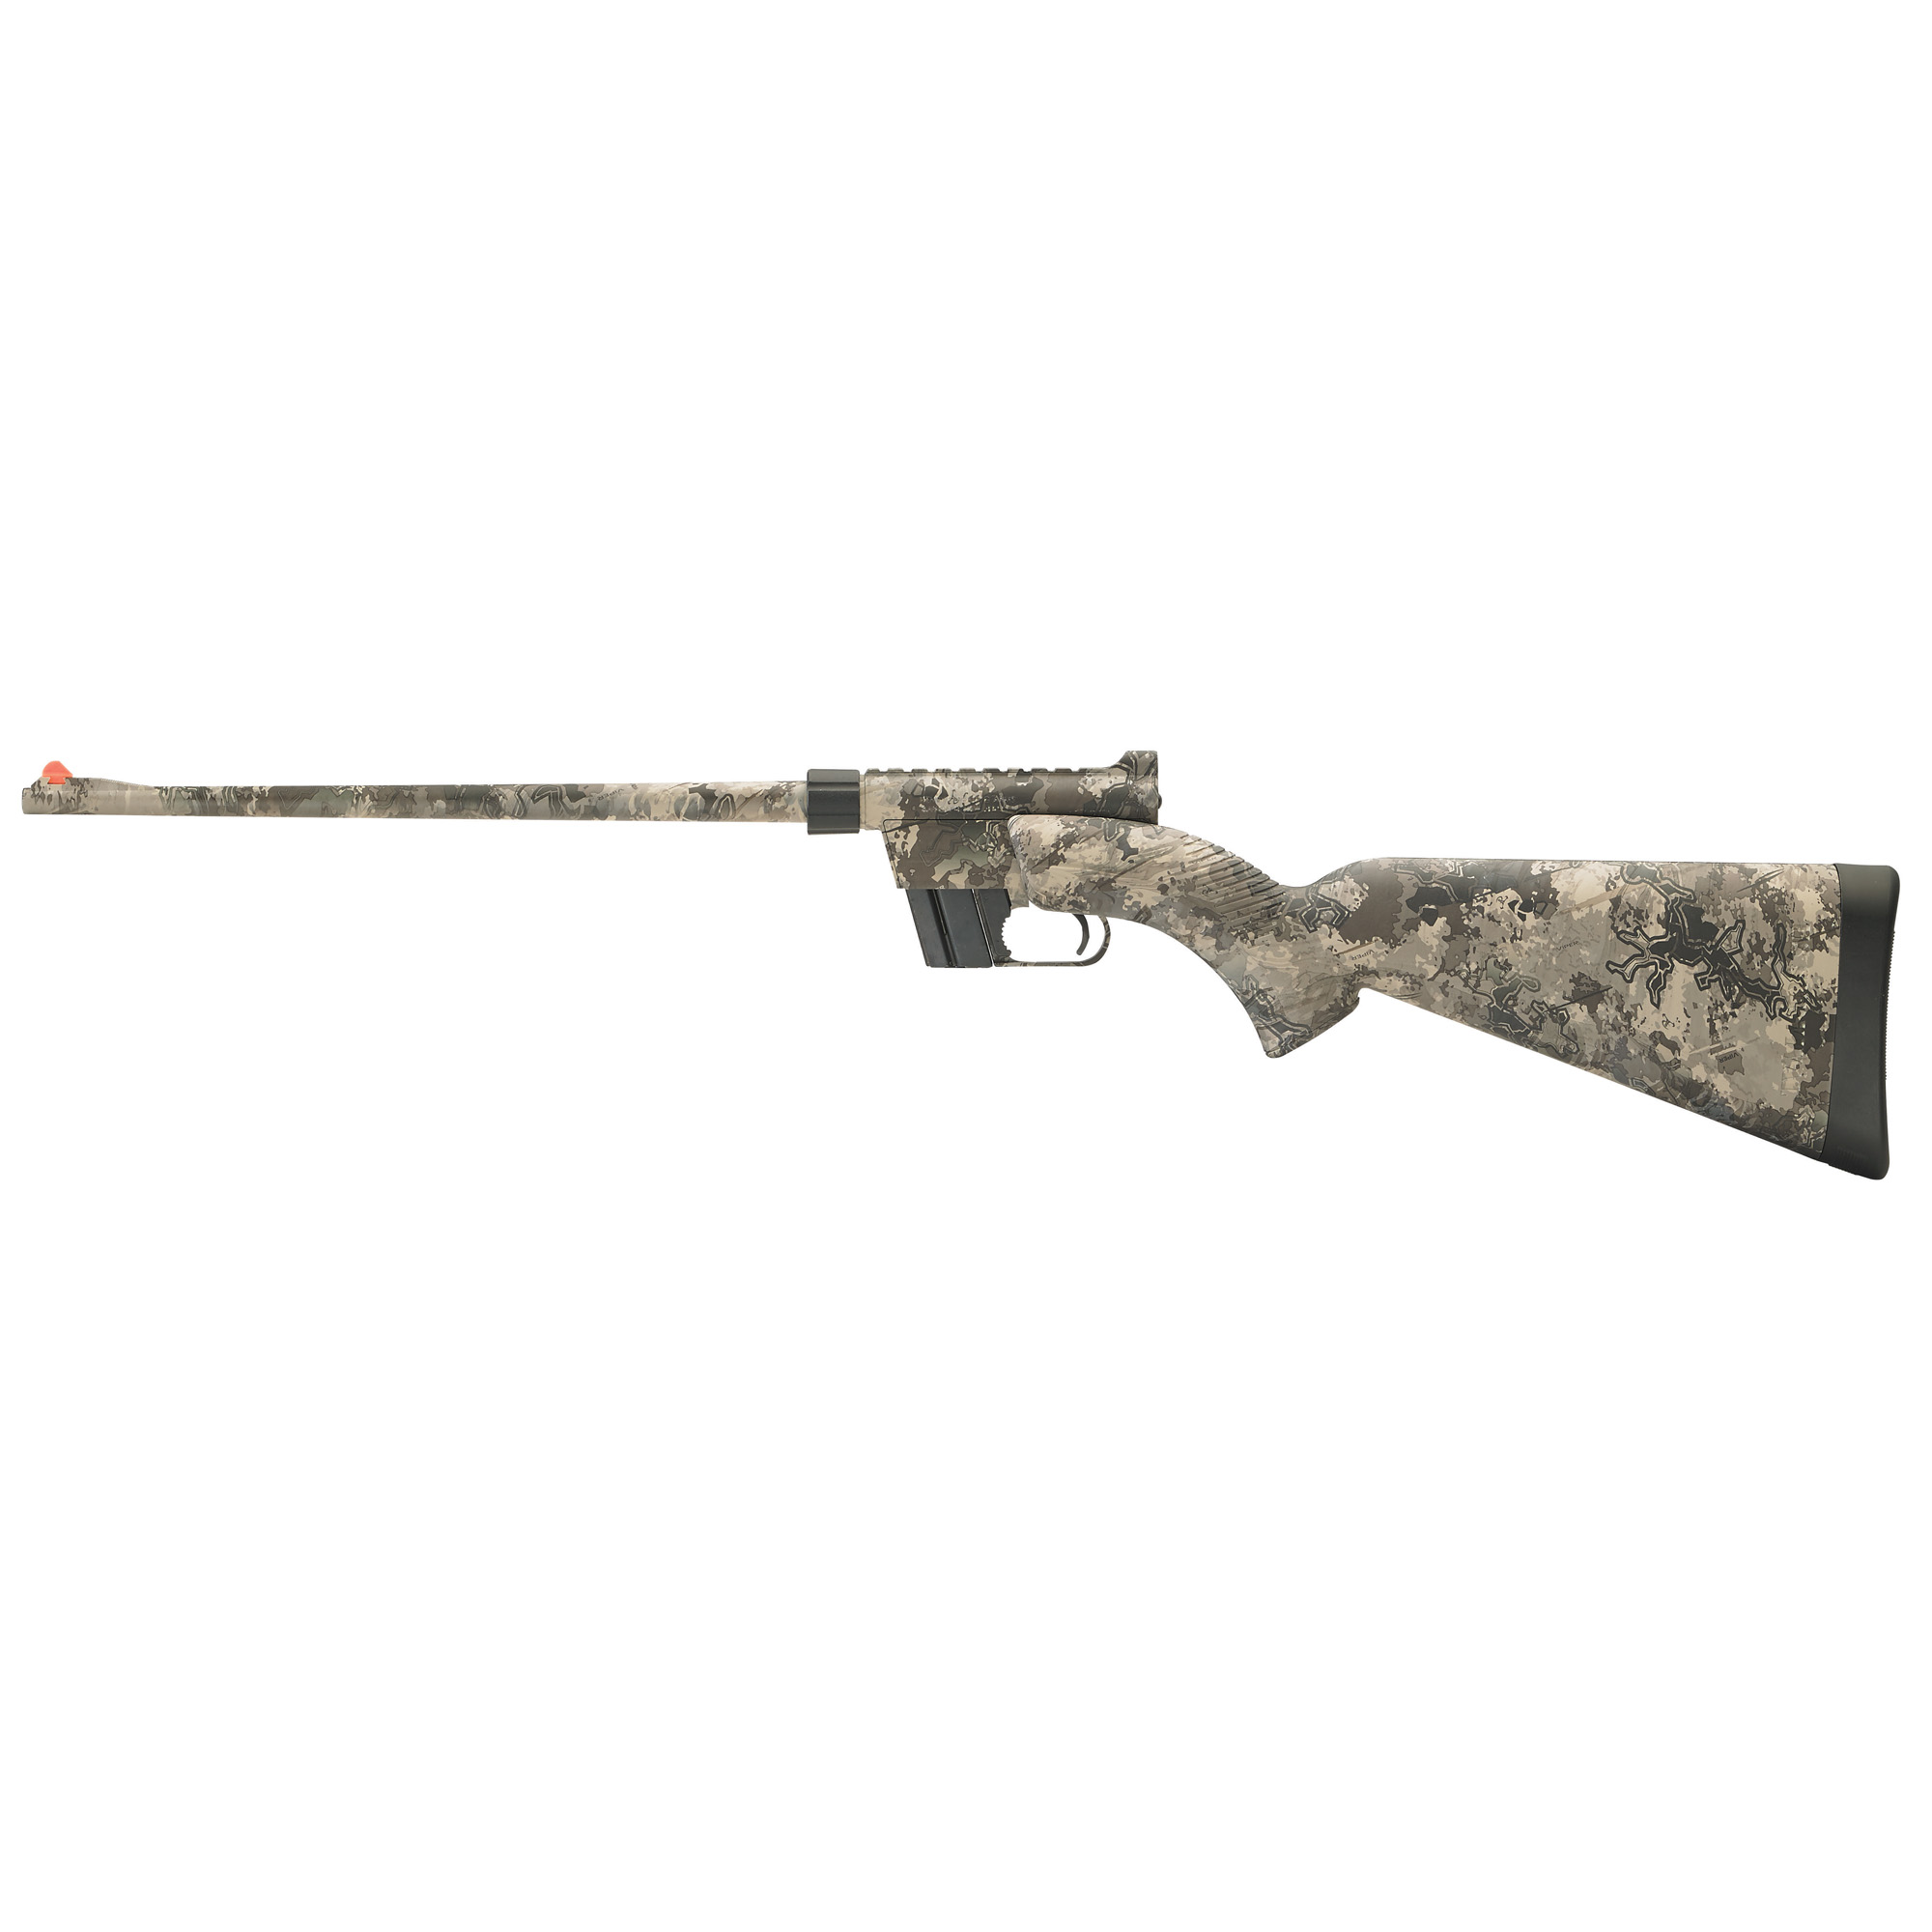 """Like the original Henry U.S. Survival Rifle"""" this innovative"""" semi-automatic model is lightweight (3.5 lbs.) and highly portable. At just 16.5"""" long when all the components are stowed"""" it easily fits into the cargo area of a plane"""" boat or in a backpack. It's chambered in .22 LR so you can carry a large quantity of ammunition without adding much weight to your gear."""